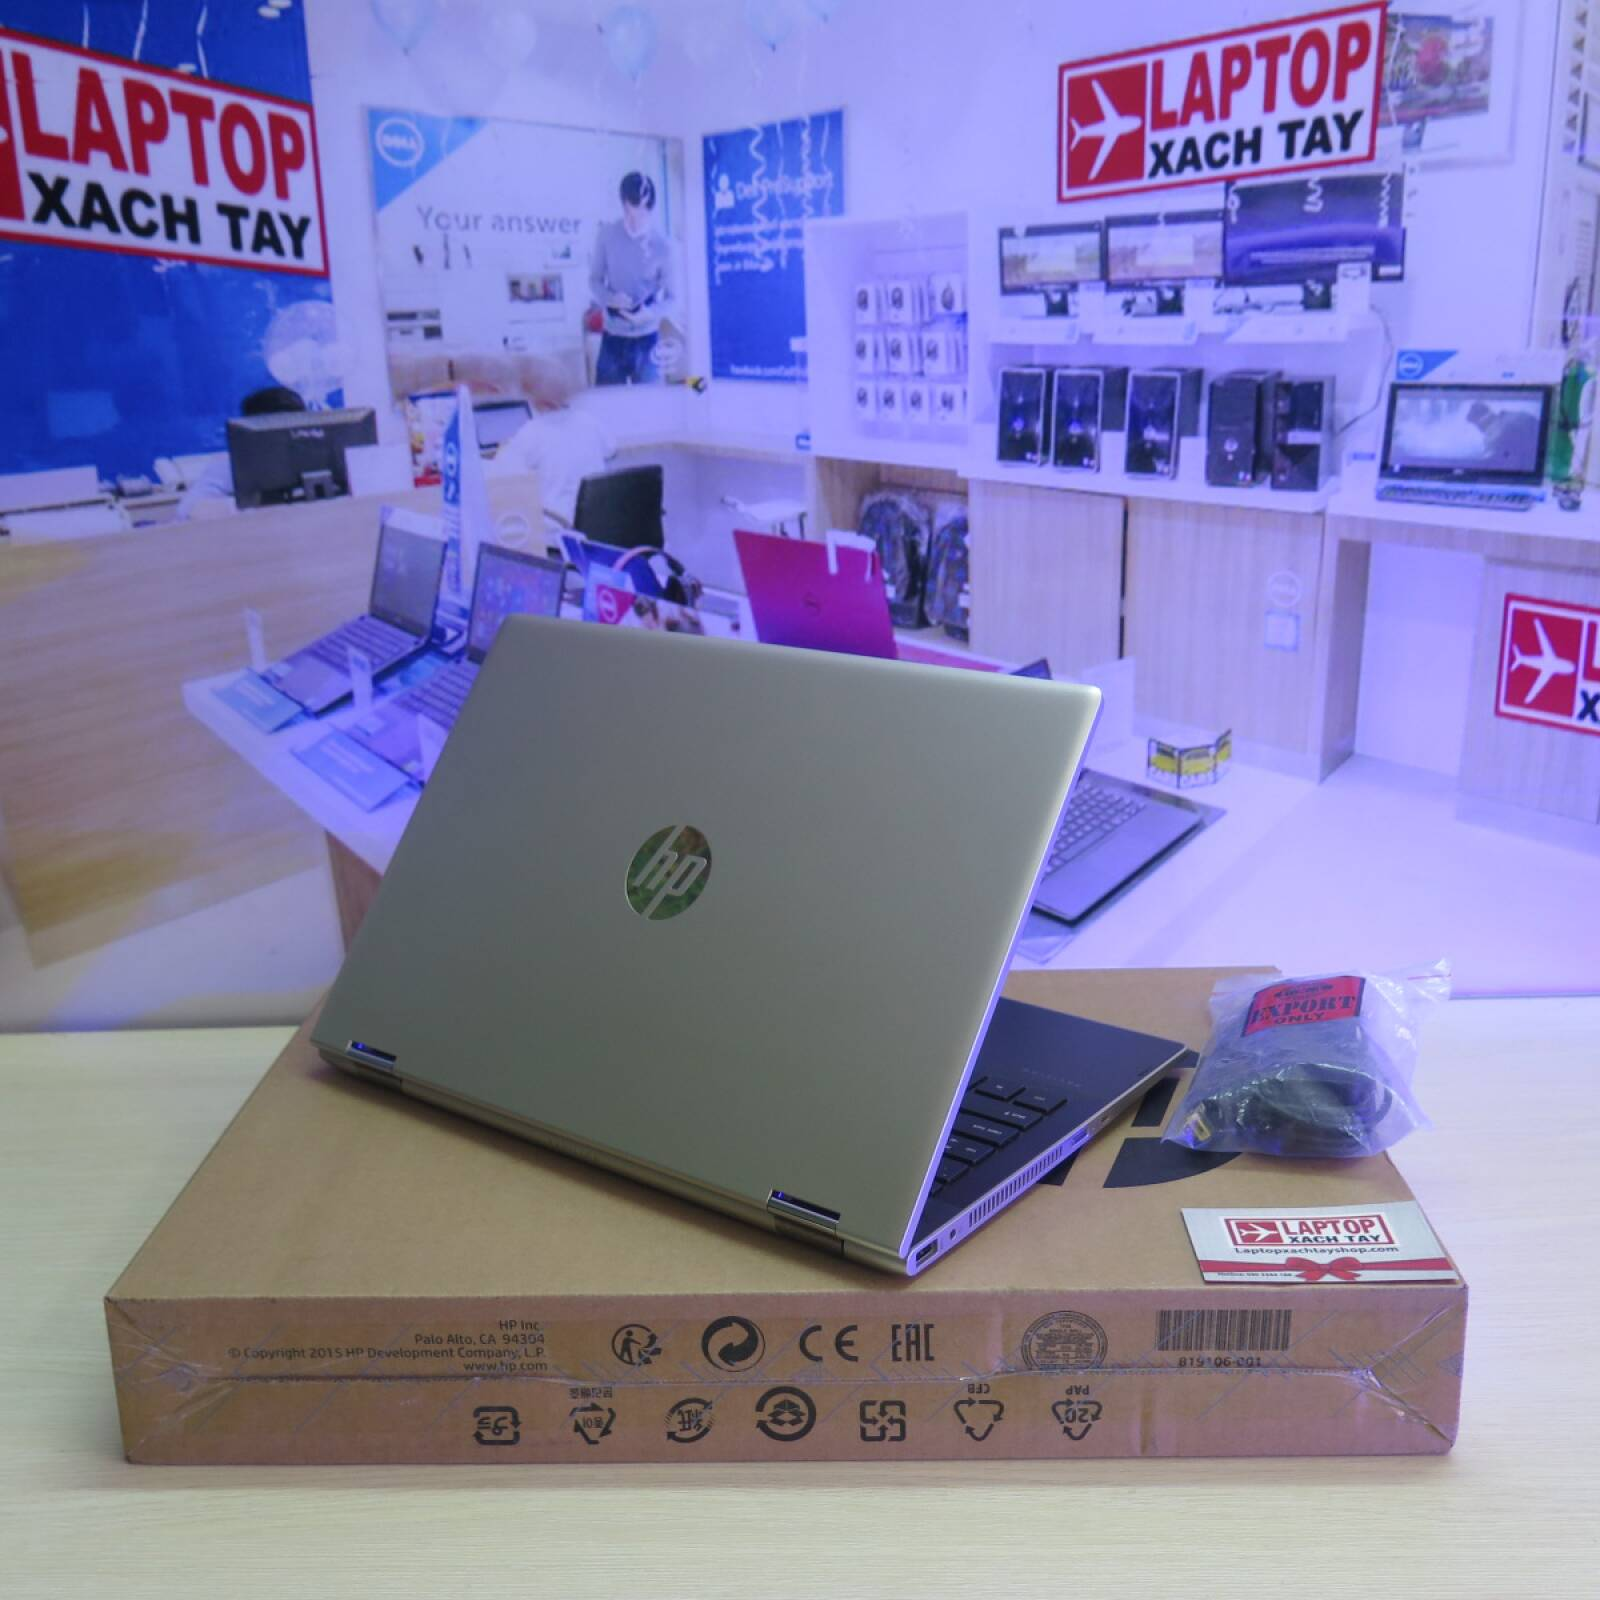 HP Pavilion x360 CD0082TU - Laptopxachtayshop.com